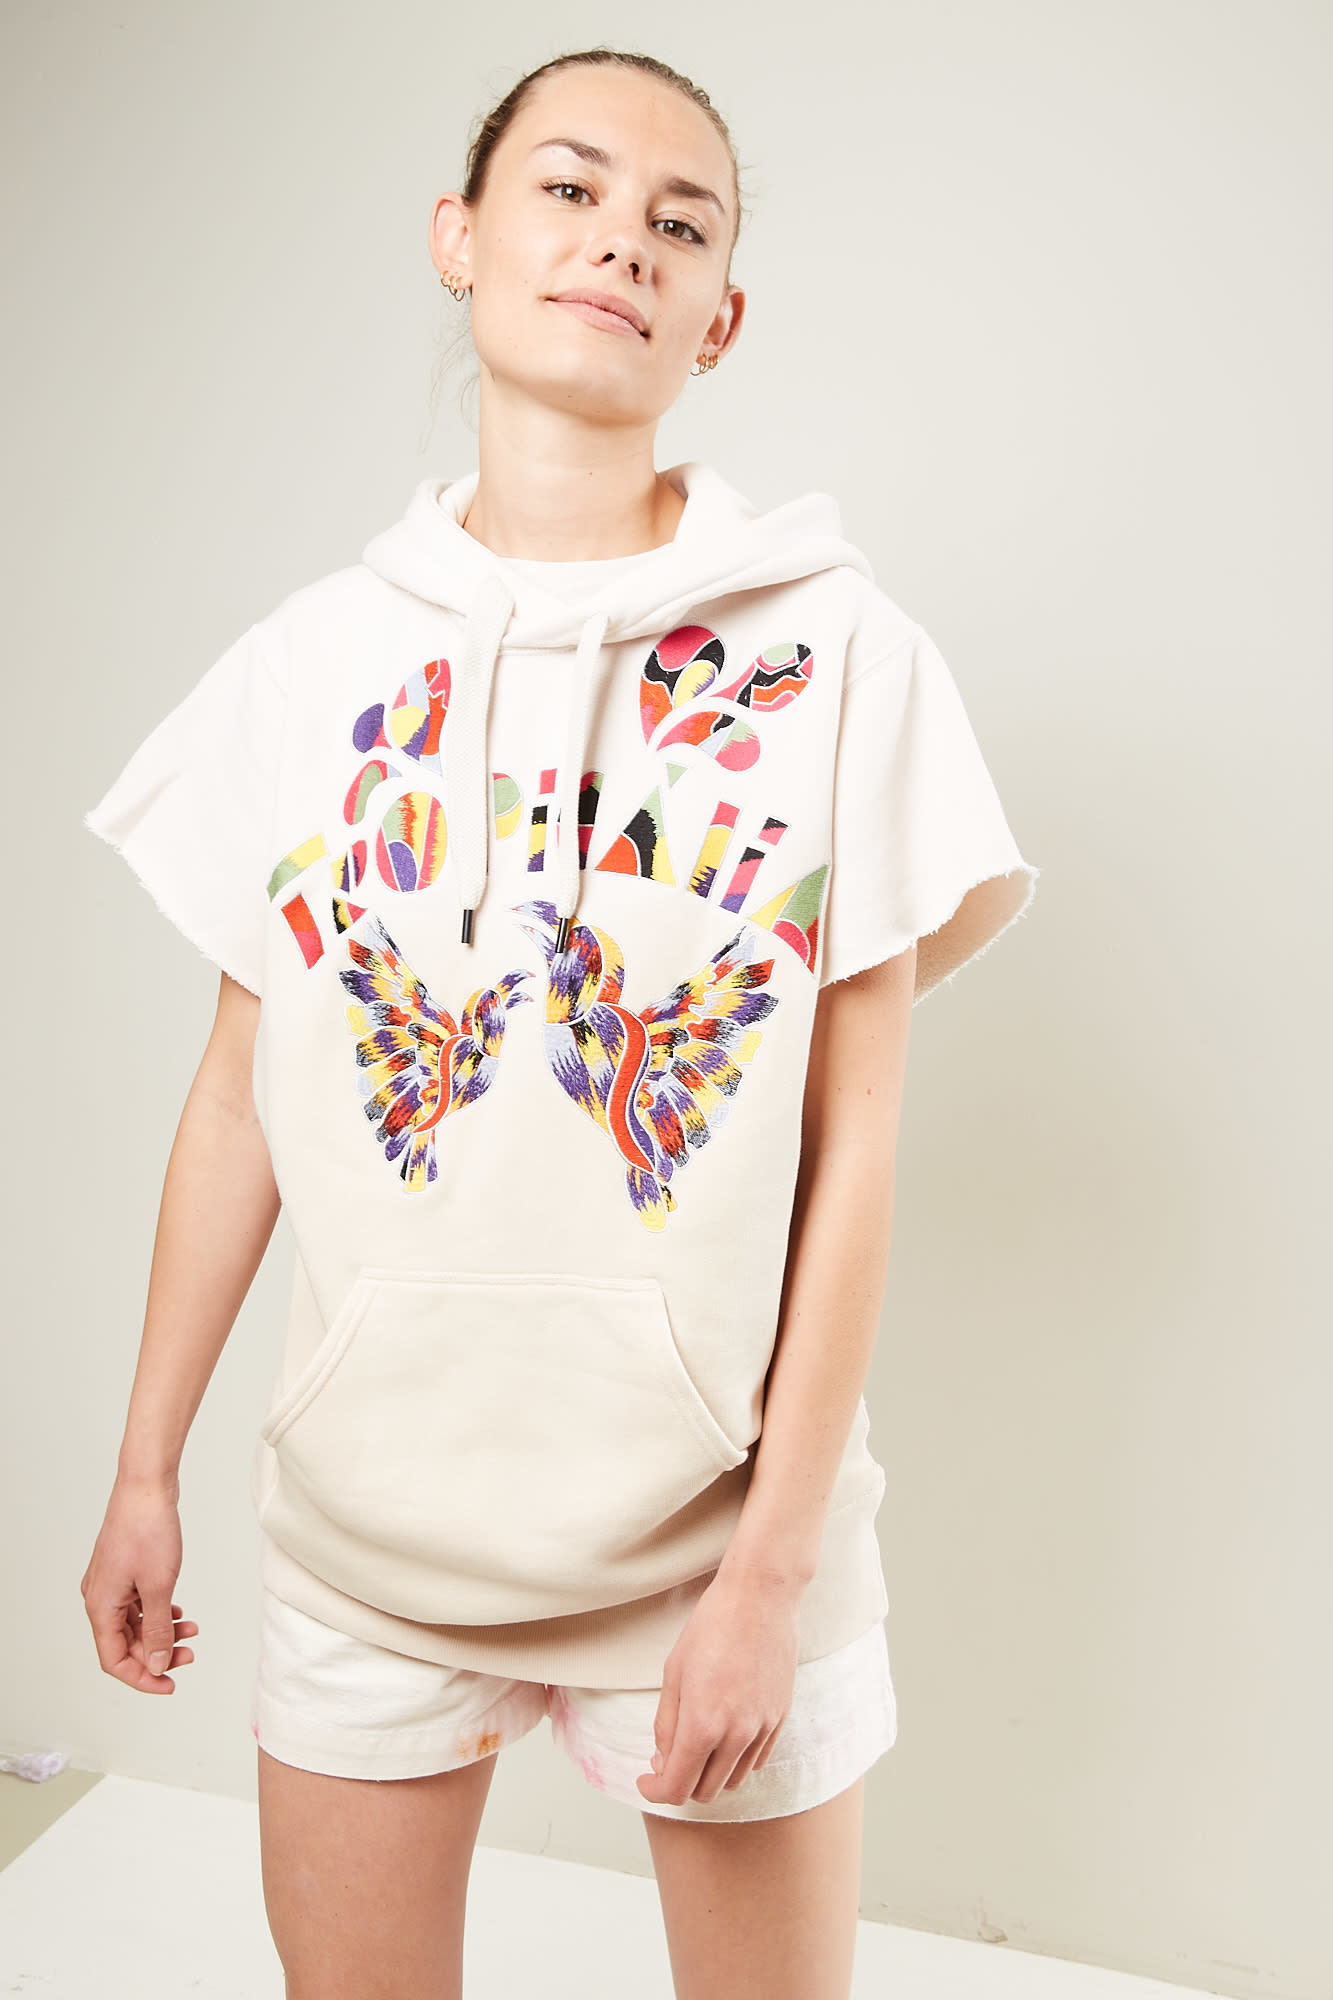 Isabel Marant - Miami show embroidered sweat shirt